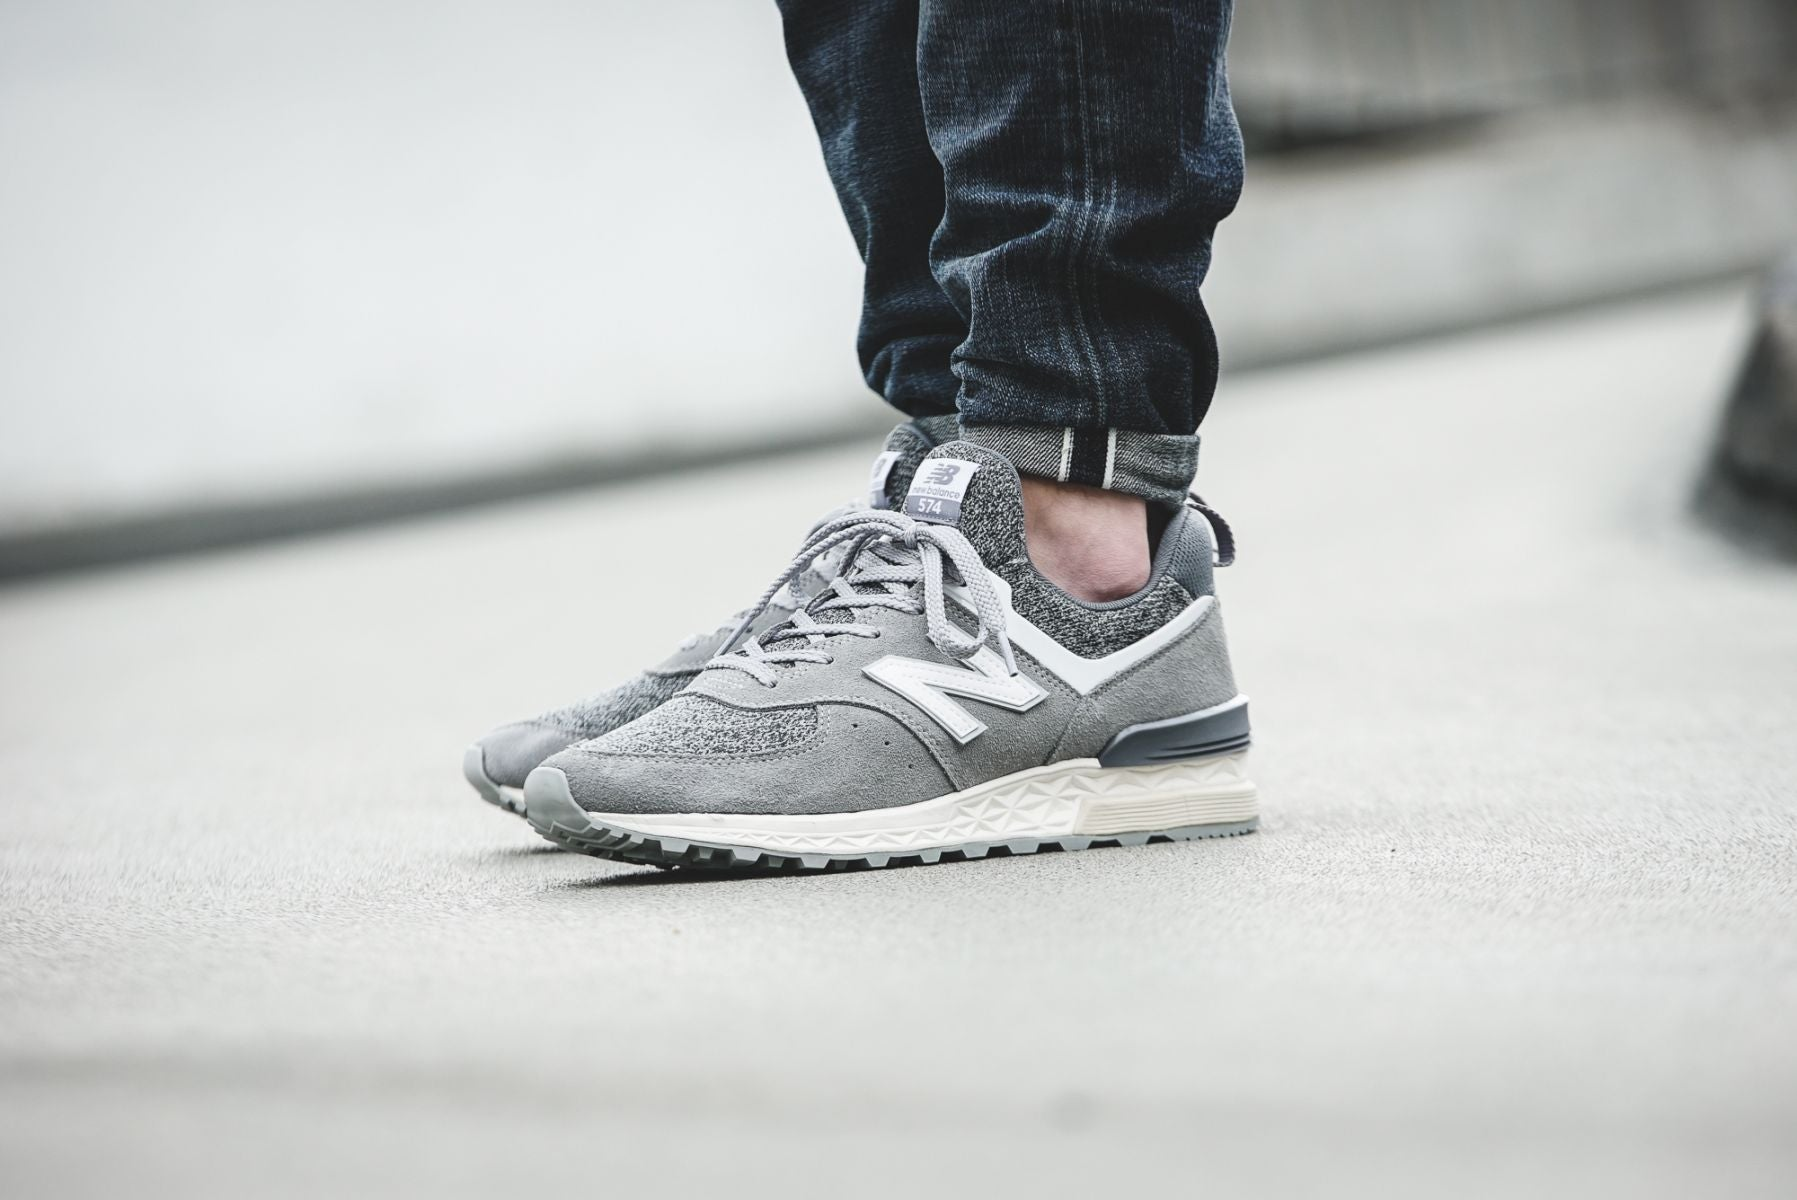 reputable site 4f3c6 a712c New Balance 574 Sport Suede Pack  Grey with White